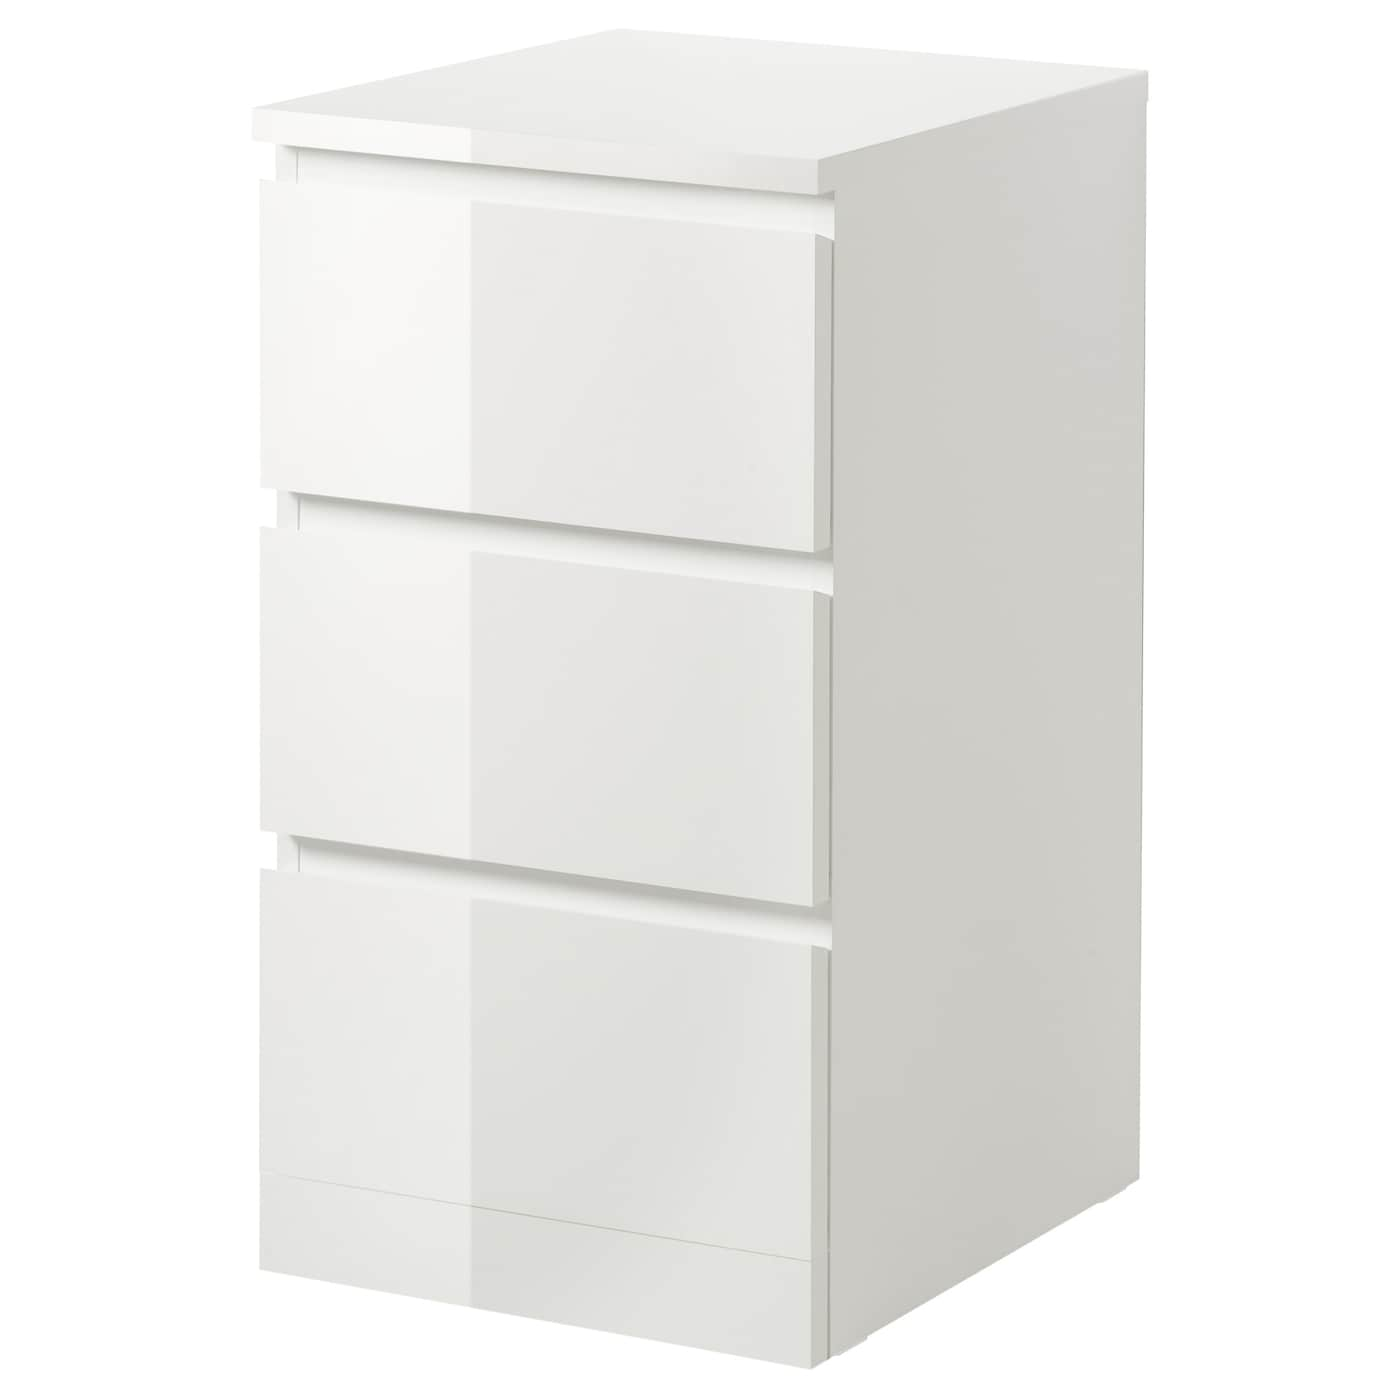 malm chest of 3 drawers high gloss white 40x78 cm ikea. Black Bedroom Furniture Sets. Home Design Ideas